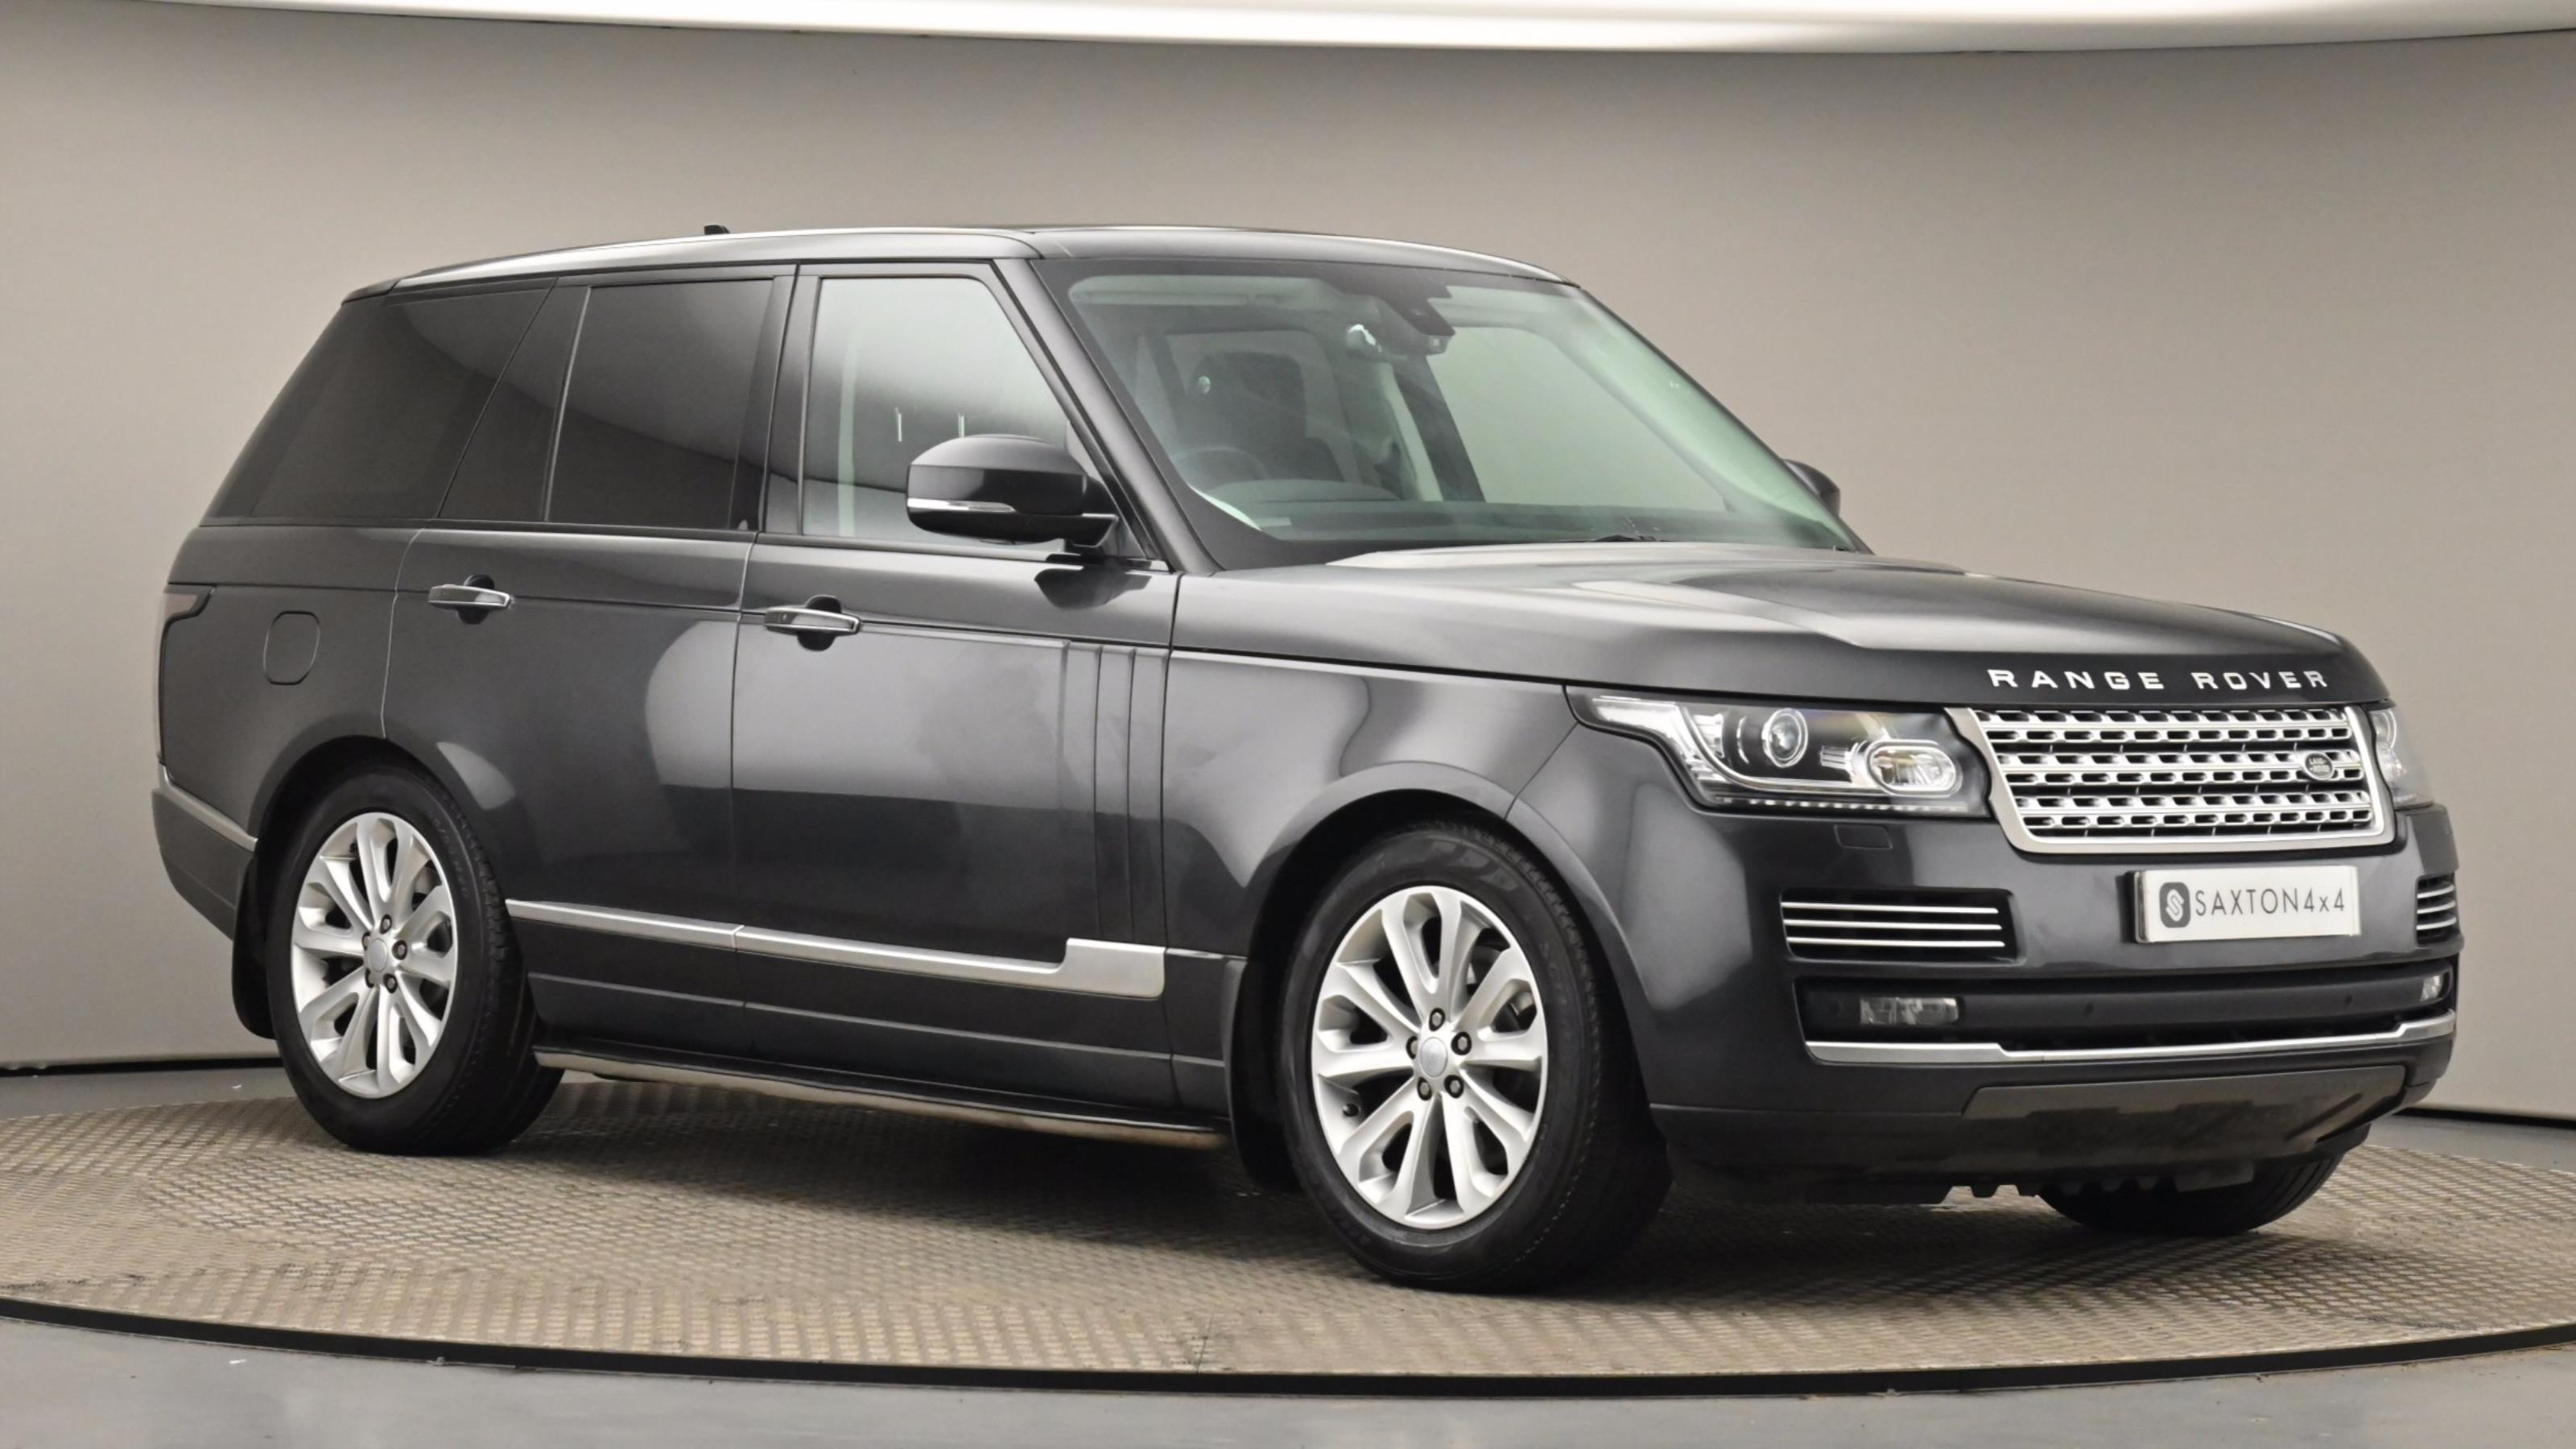 Used 2016 Land Rover RANGE ROVER 3.0 TDV6 Vogue SE 4dr Auto at Saxton4x4